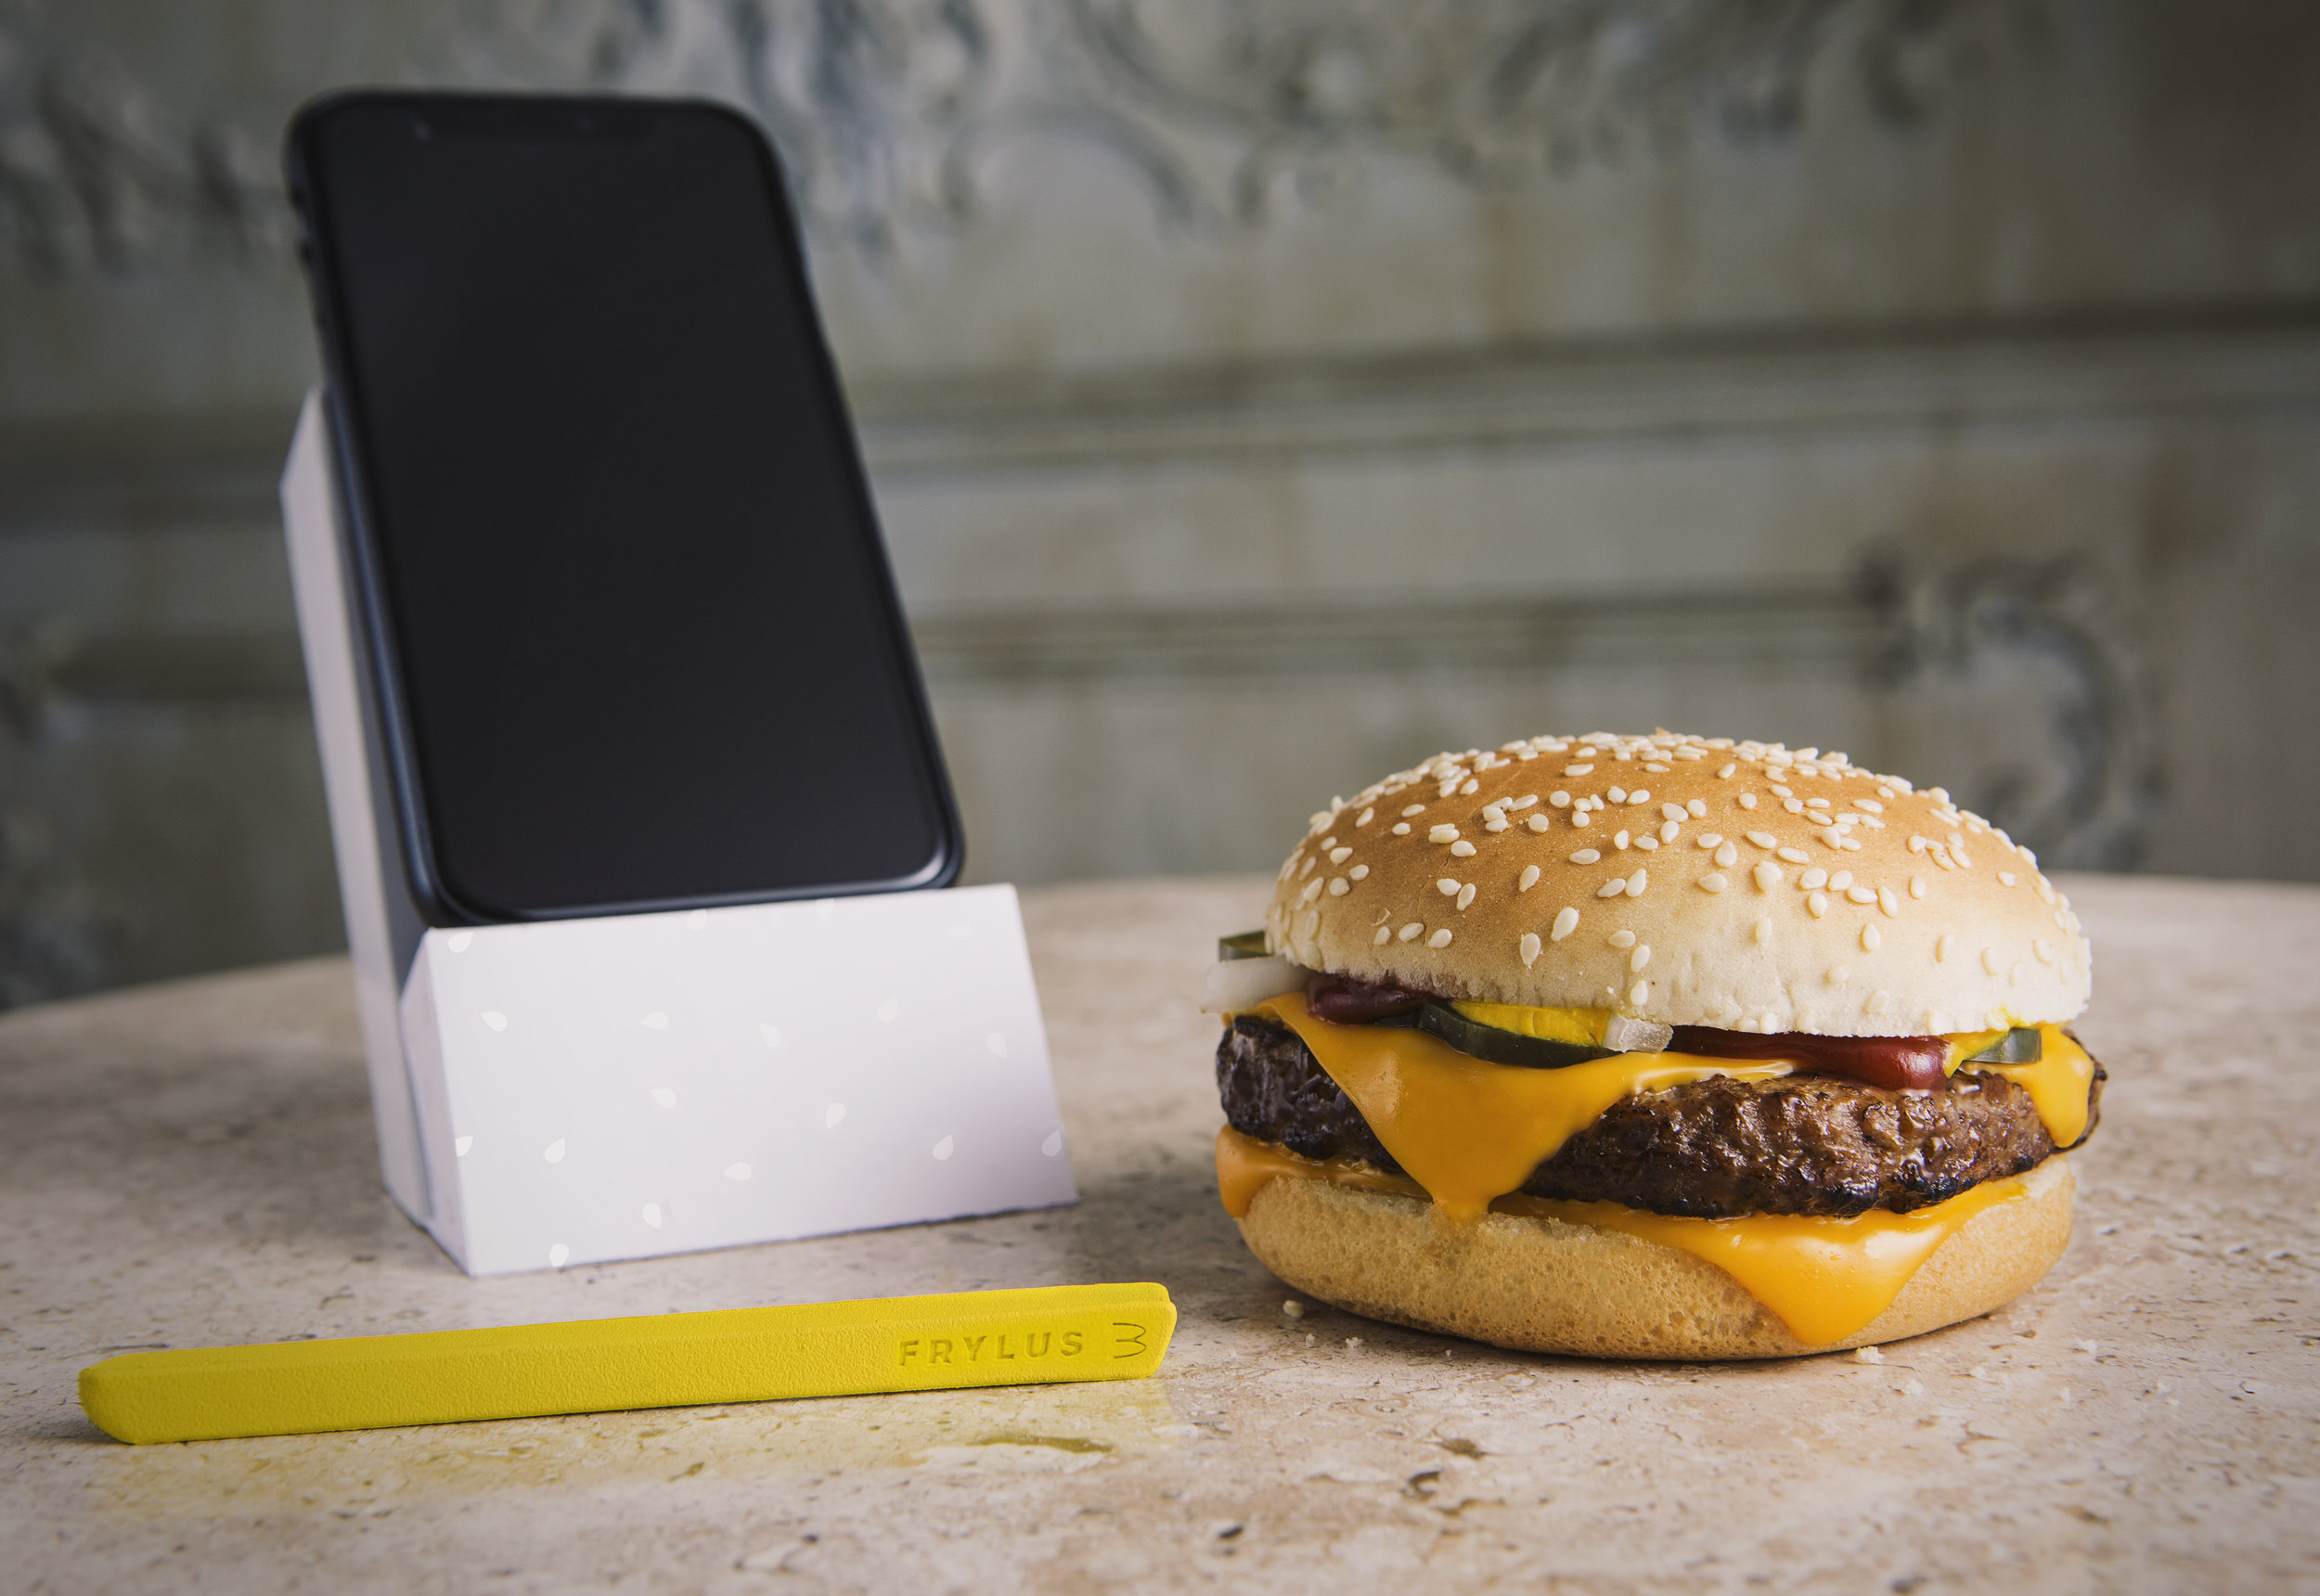 Frylus, Quarter Pounder, and Packaging - The packaging that the Frylus came in could be folded into a phone stand so that you could take a selfie while holding your burger and Frylus.